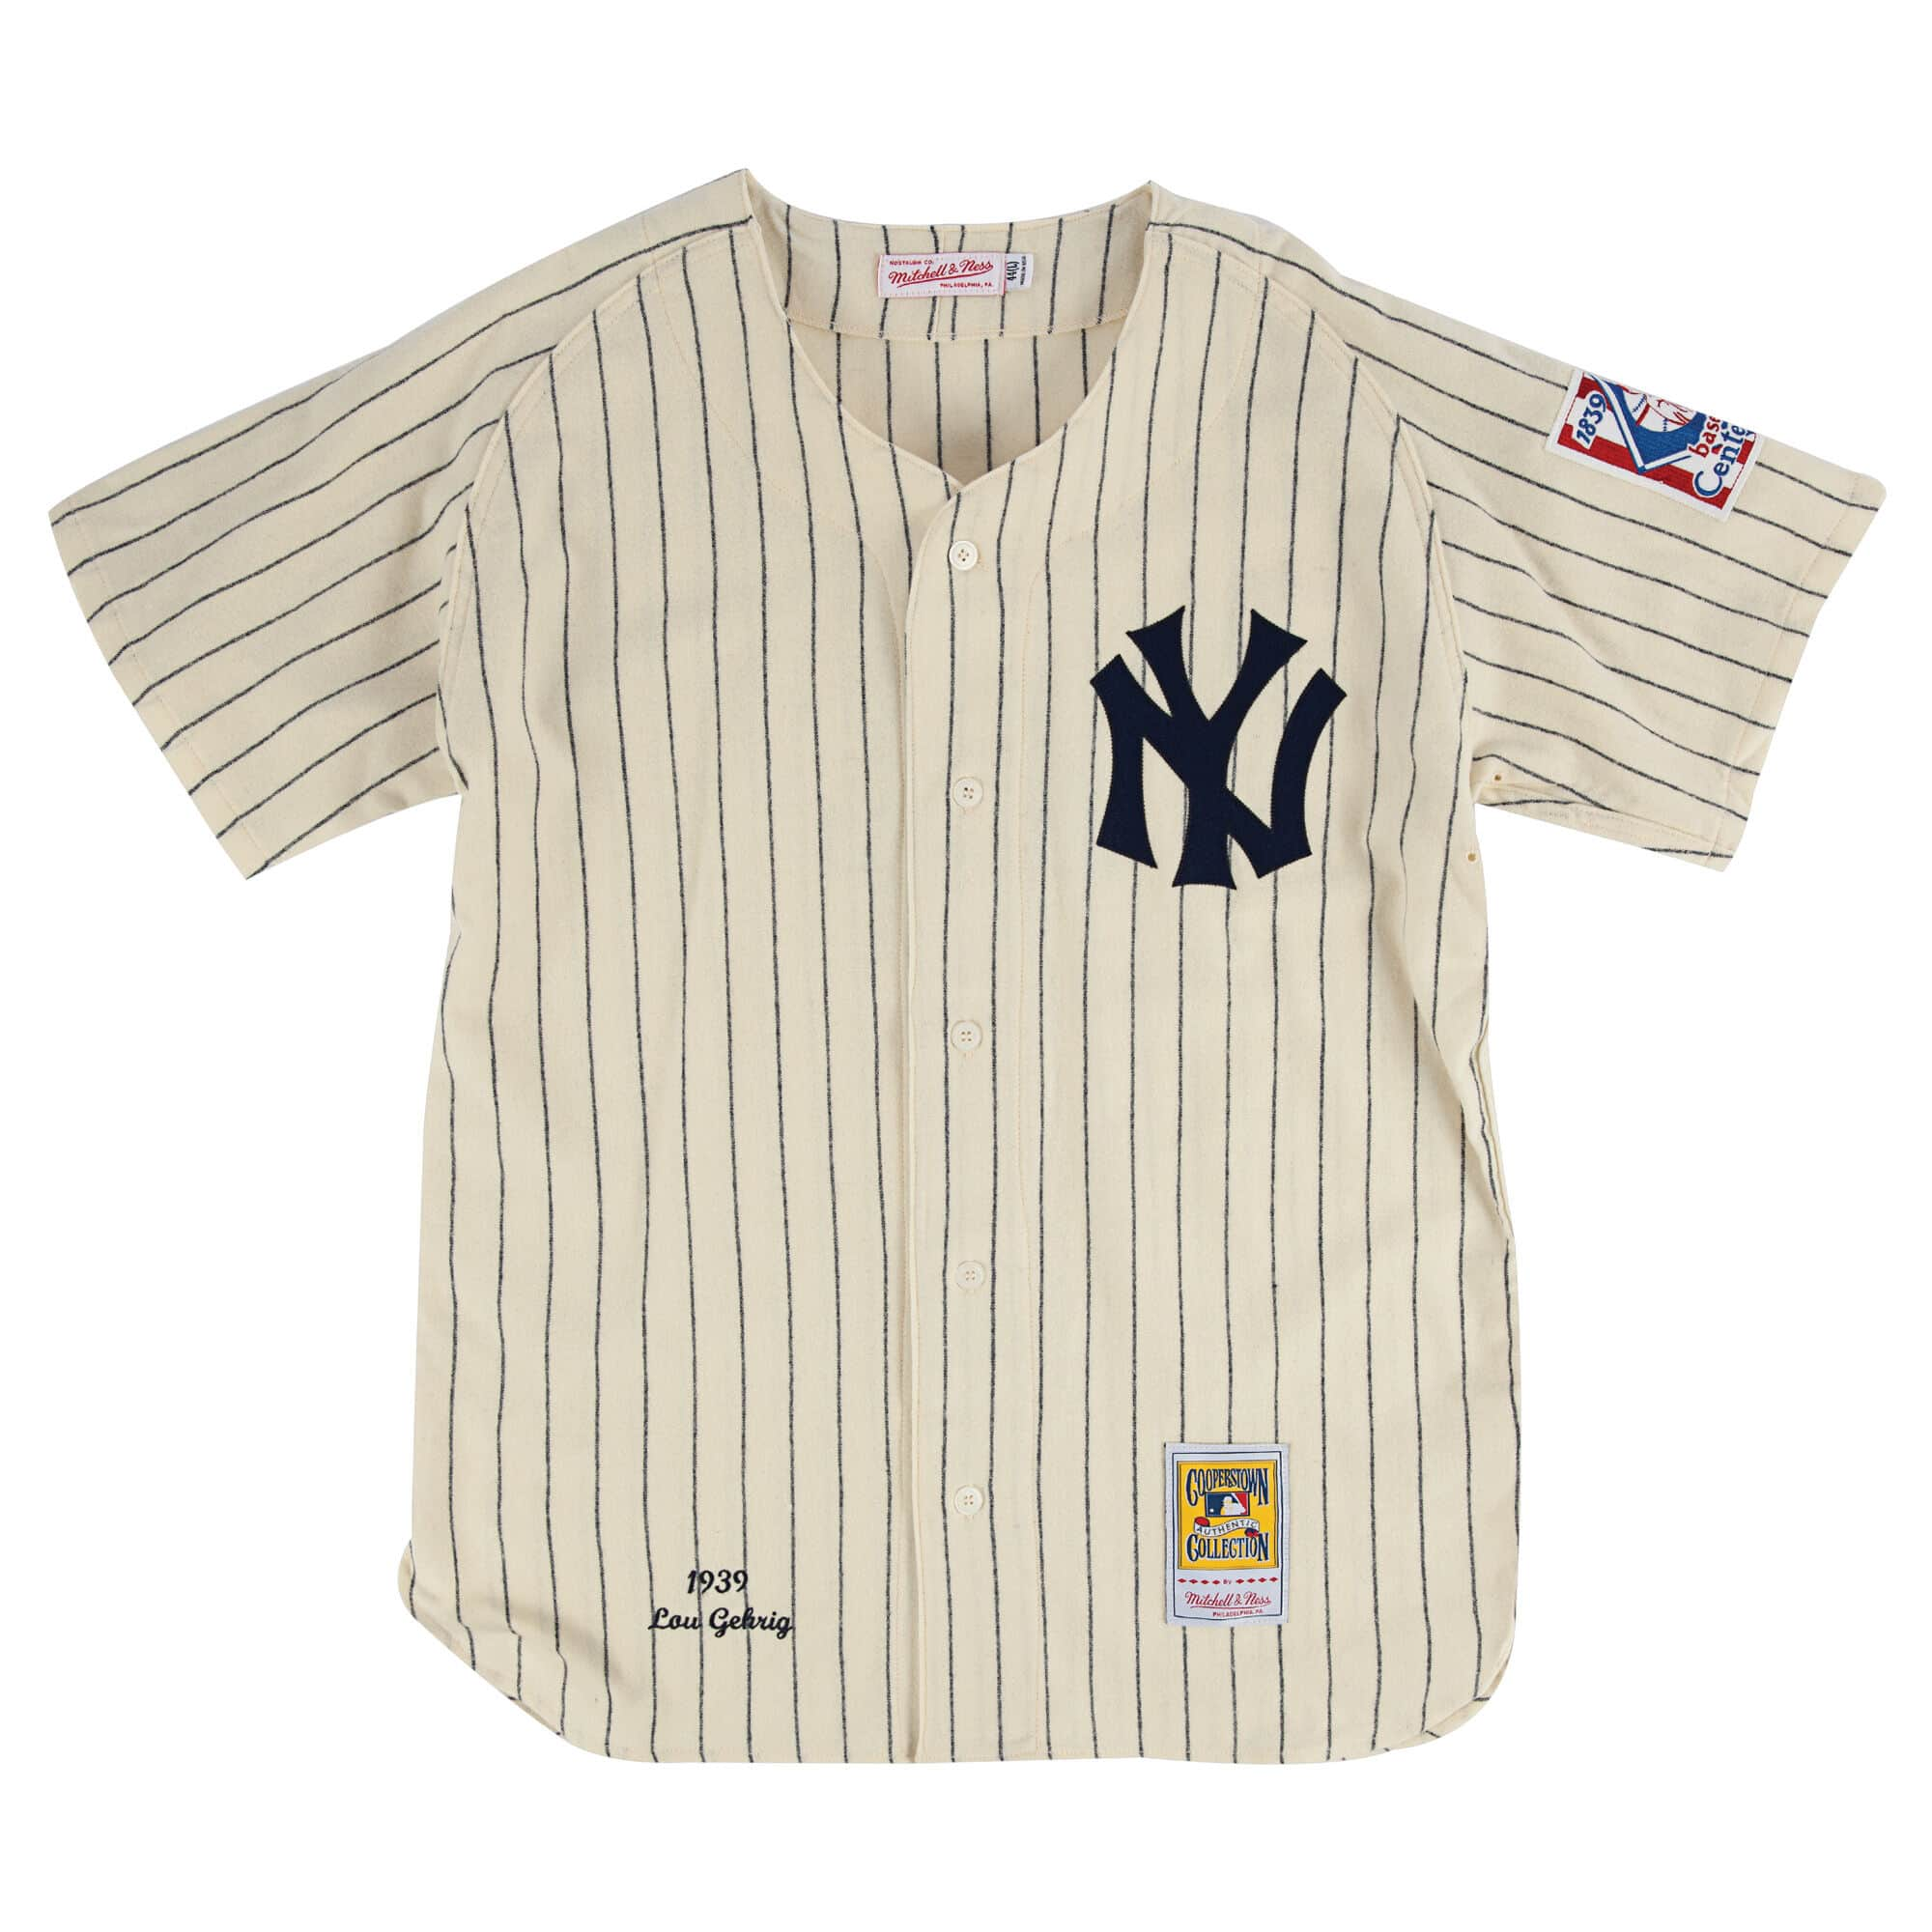 the best attitude 6d6d1 8829e M+N New York Yankees Authentic Jersey - Gehrig 4